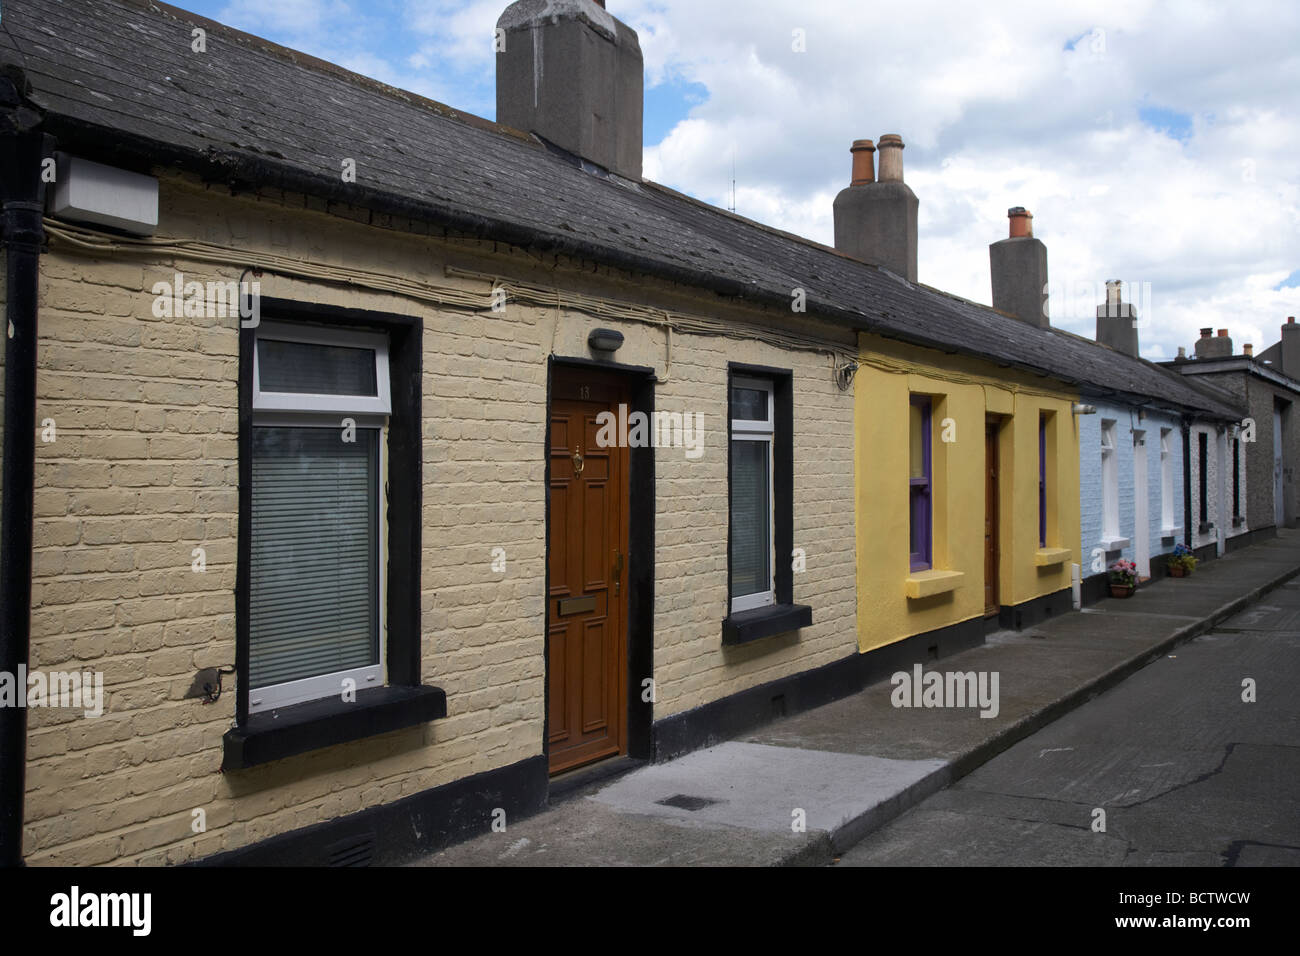 erne terrace row of old single storey cottages in the centre of rh alamy com cottages for sale near dublin ireland rental cottages dublin ireland